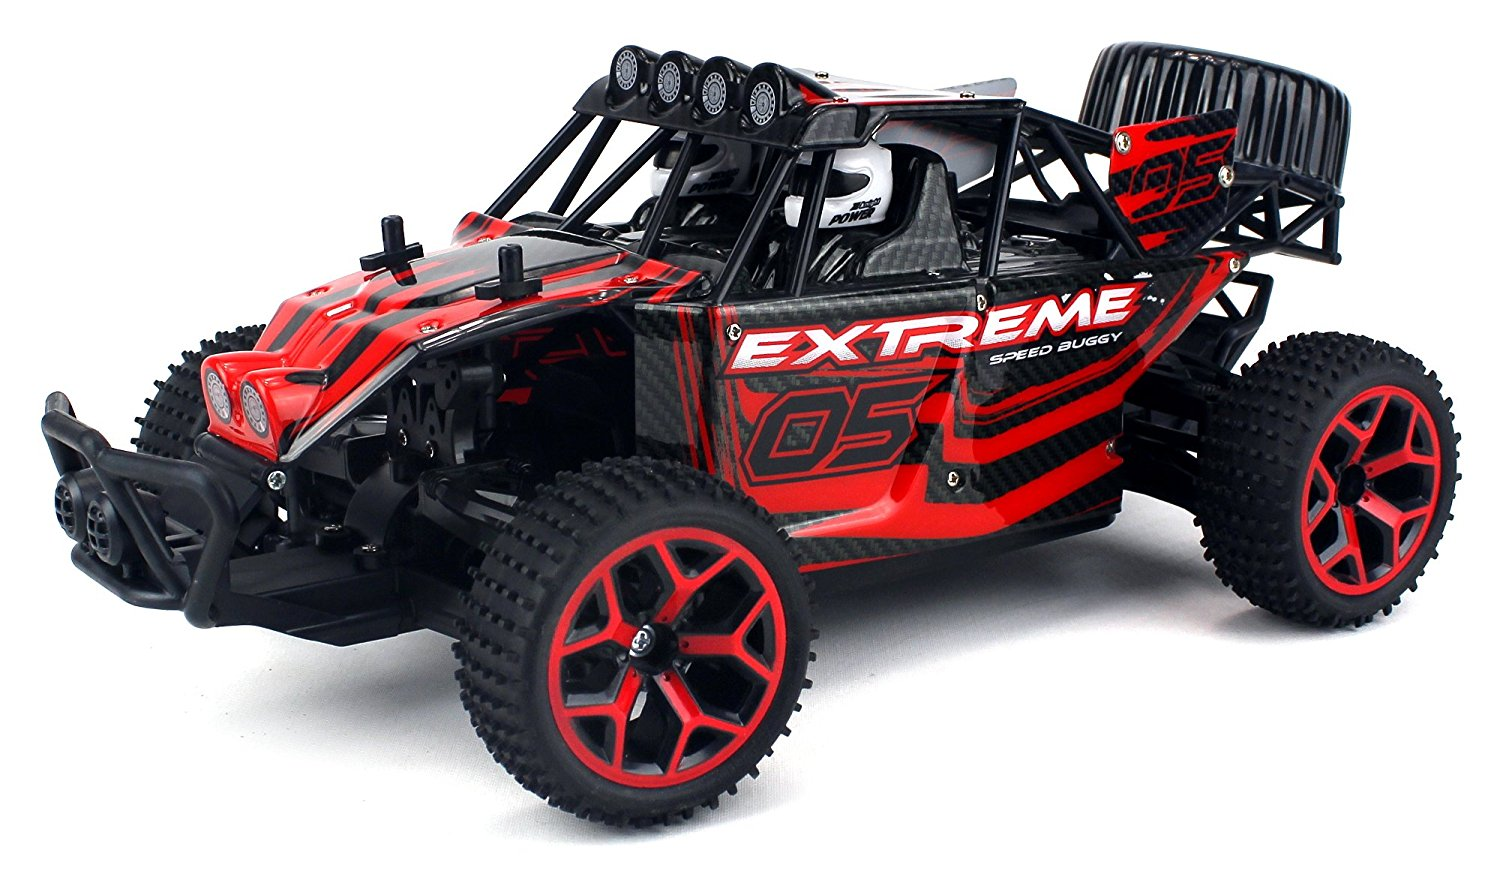 EBOYU(TM) High Speed Remote Control RC Truggy Truck Buggy 1:18 Scale 4 Wheel Drive 4WD Rechargeable w/ Working Front Suspension